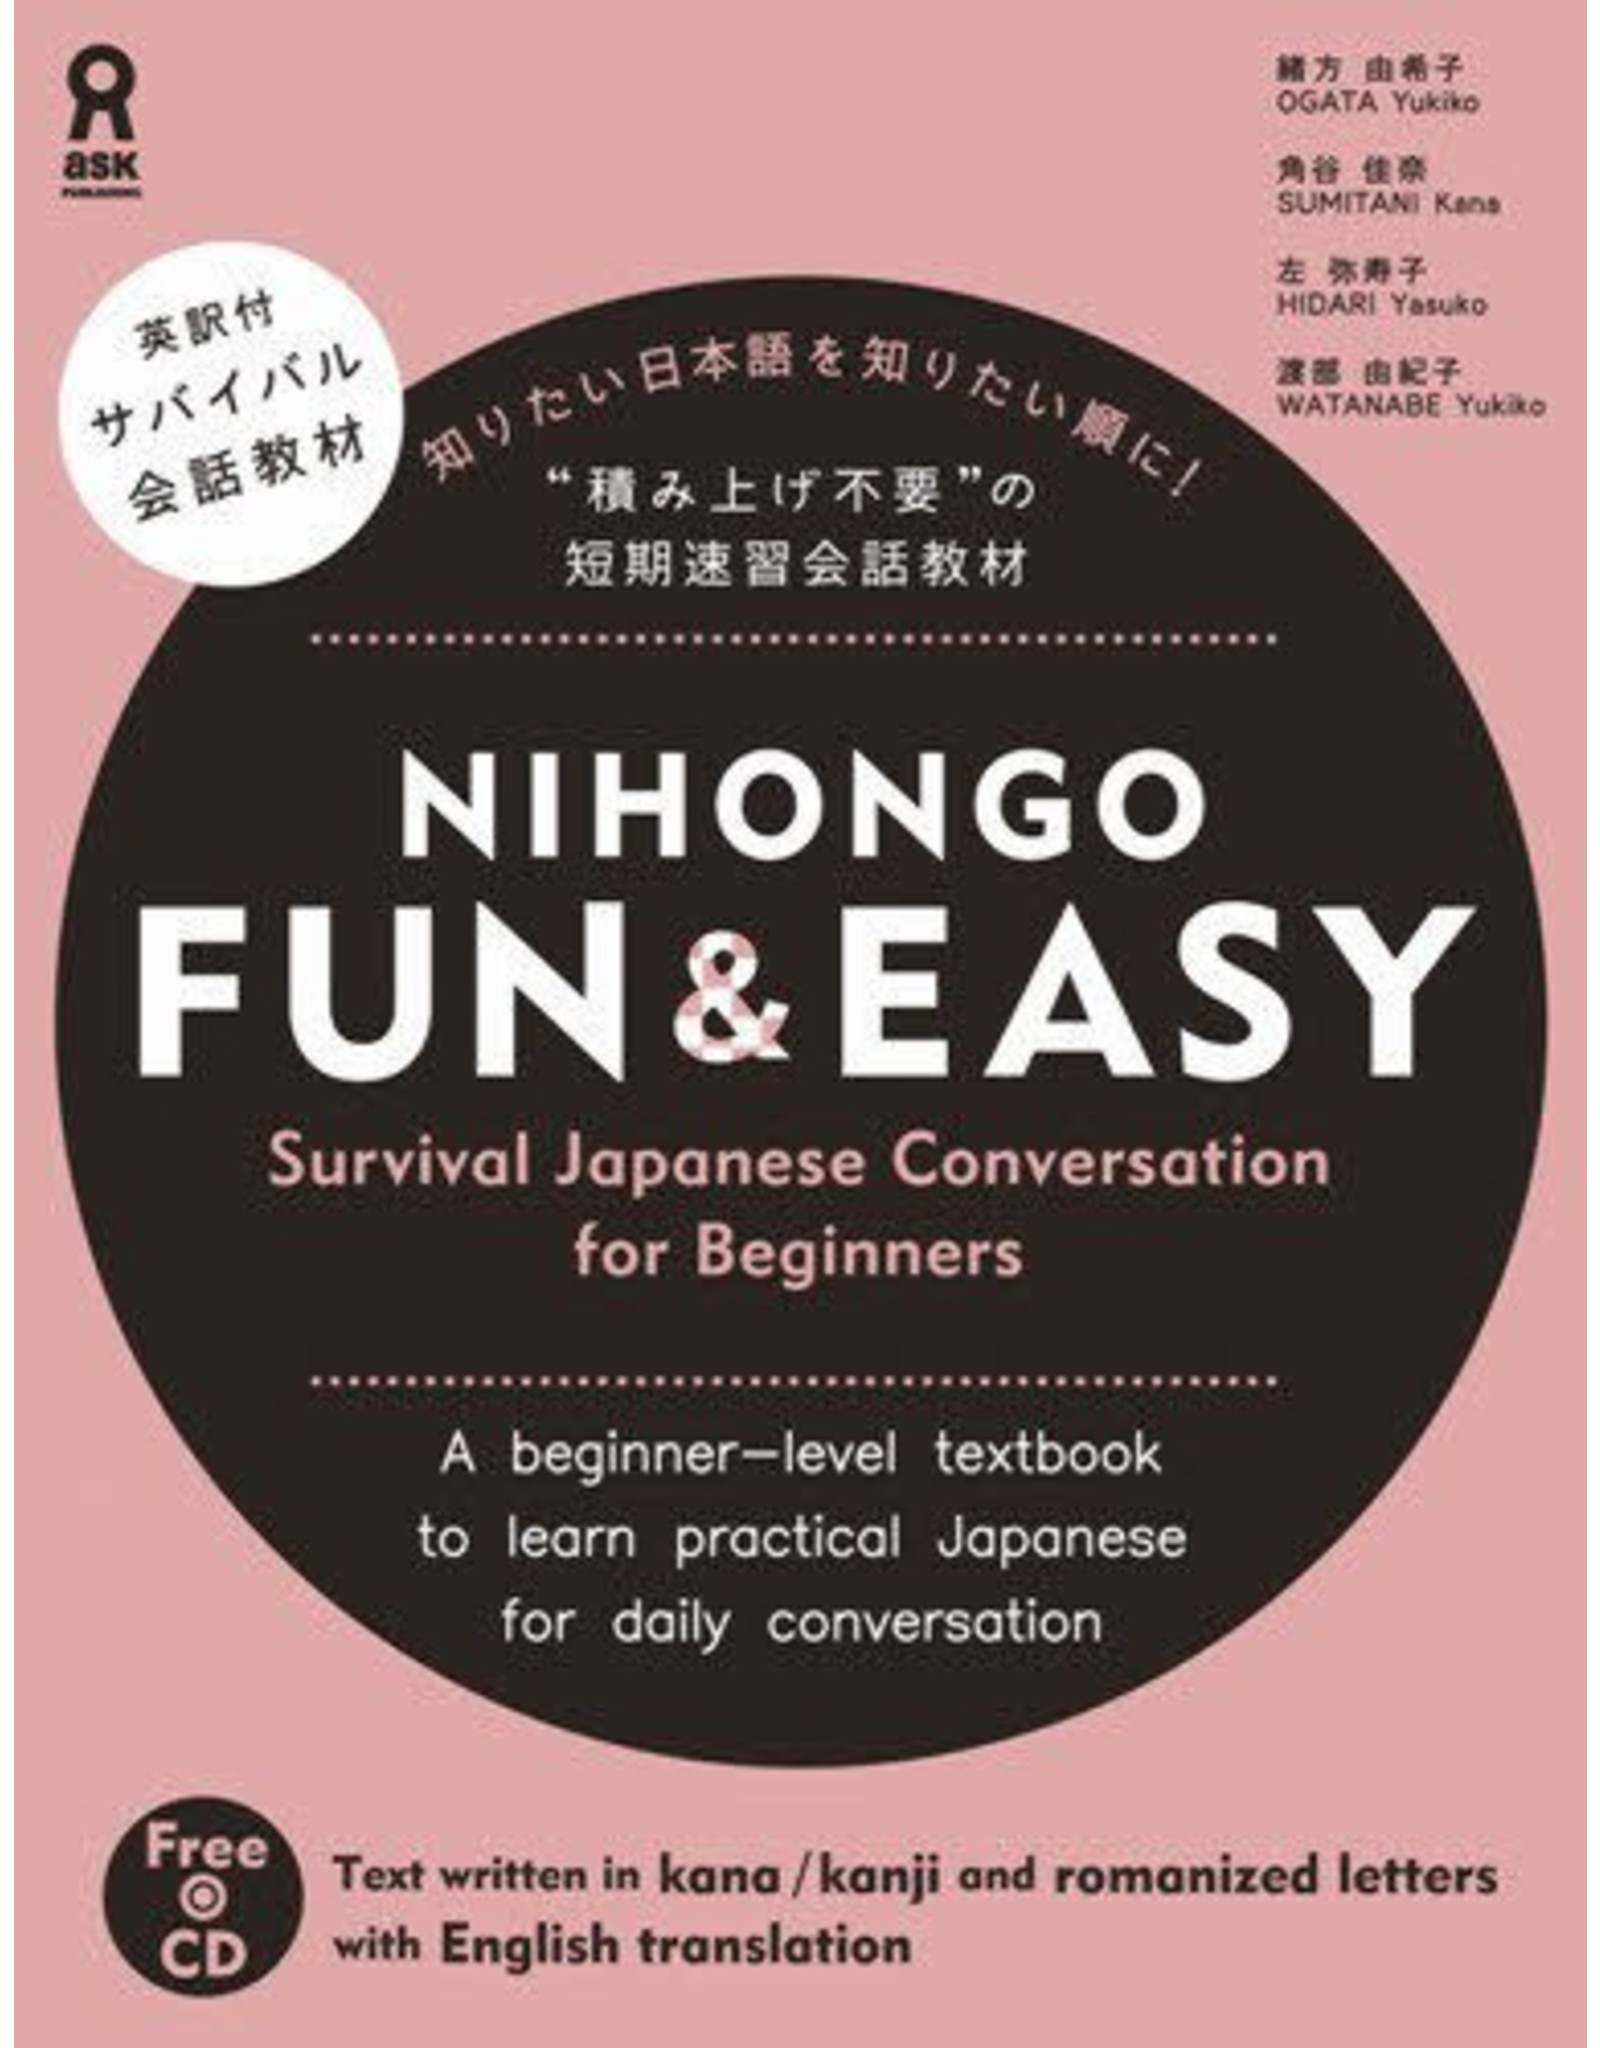 ASK NIHONGO FUN & EASY -SURVIVAL JAPANESE CONVERSATION FOR BEGINNERS-